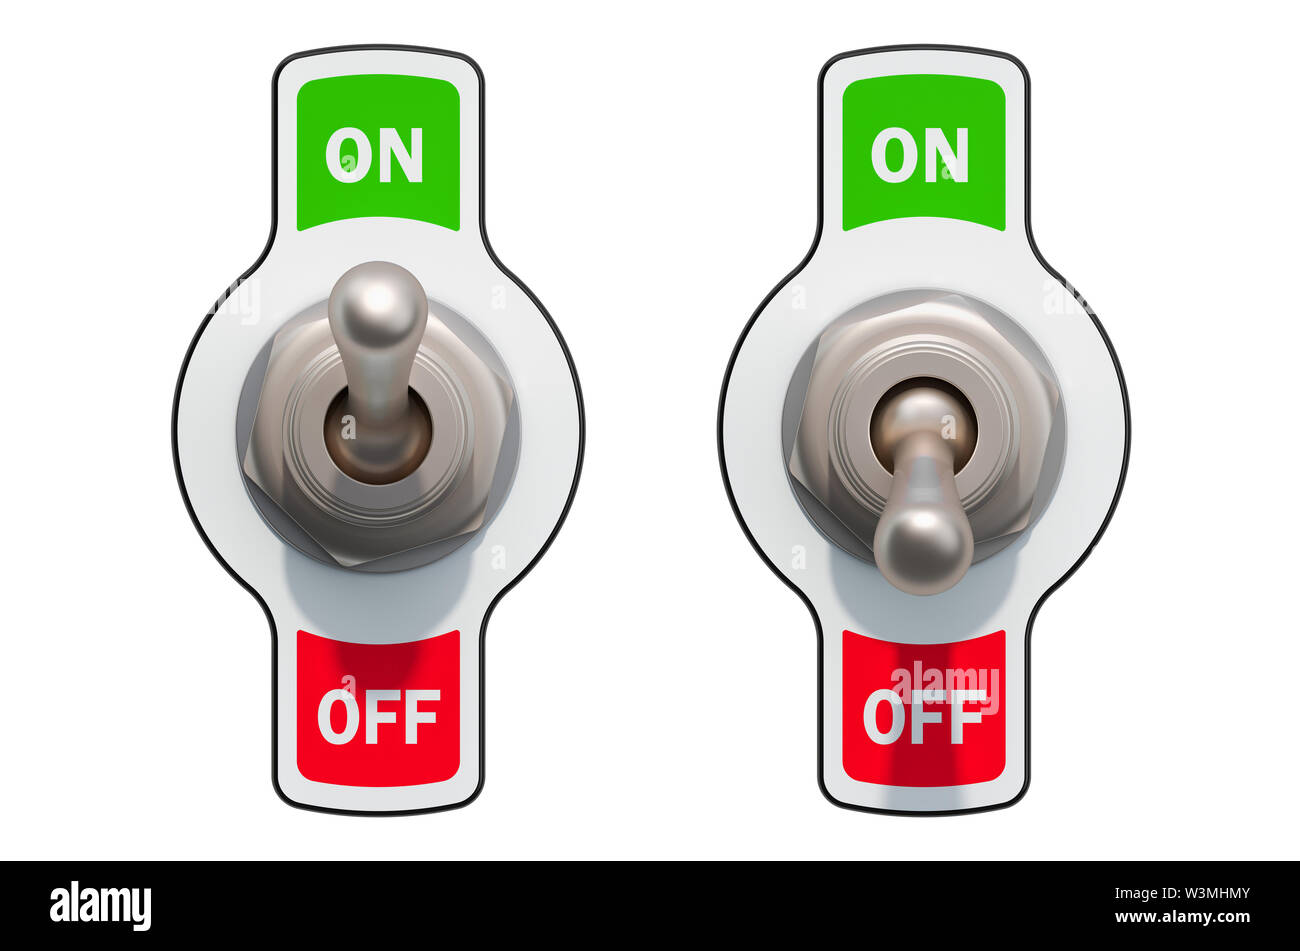 Toggle Switches on and off isolated on white background - Stock Image